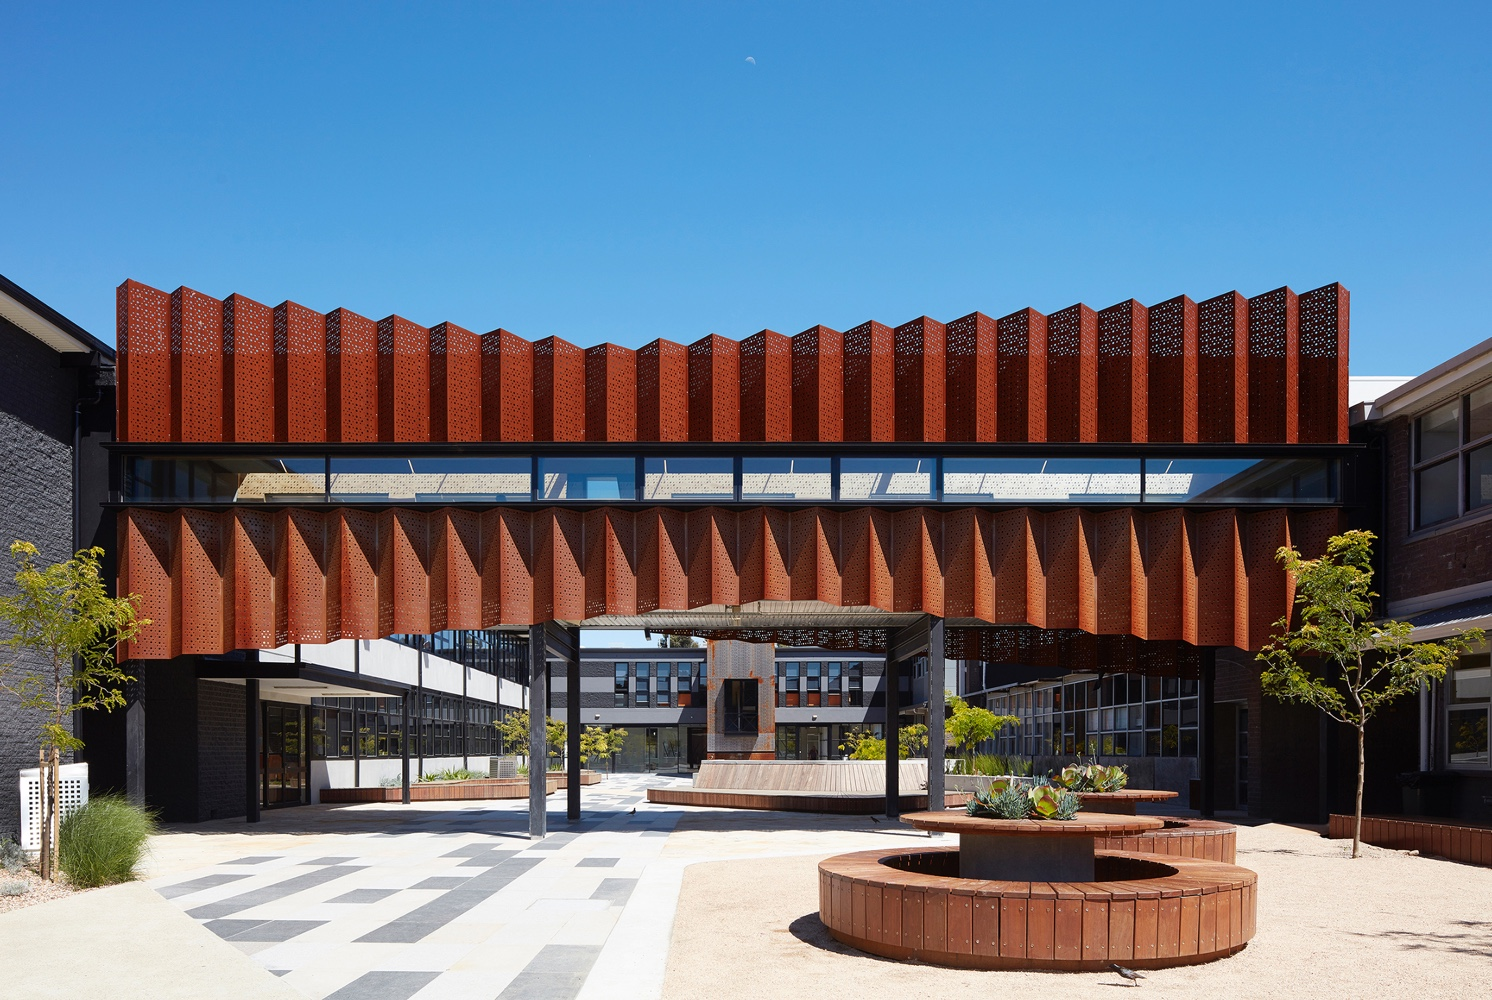 Zig-zag-corten-panels-for-the-exterior-of-Flyover-Gallery-at-Caroline-Chisholm-College